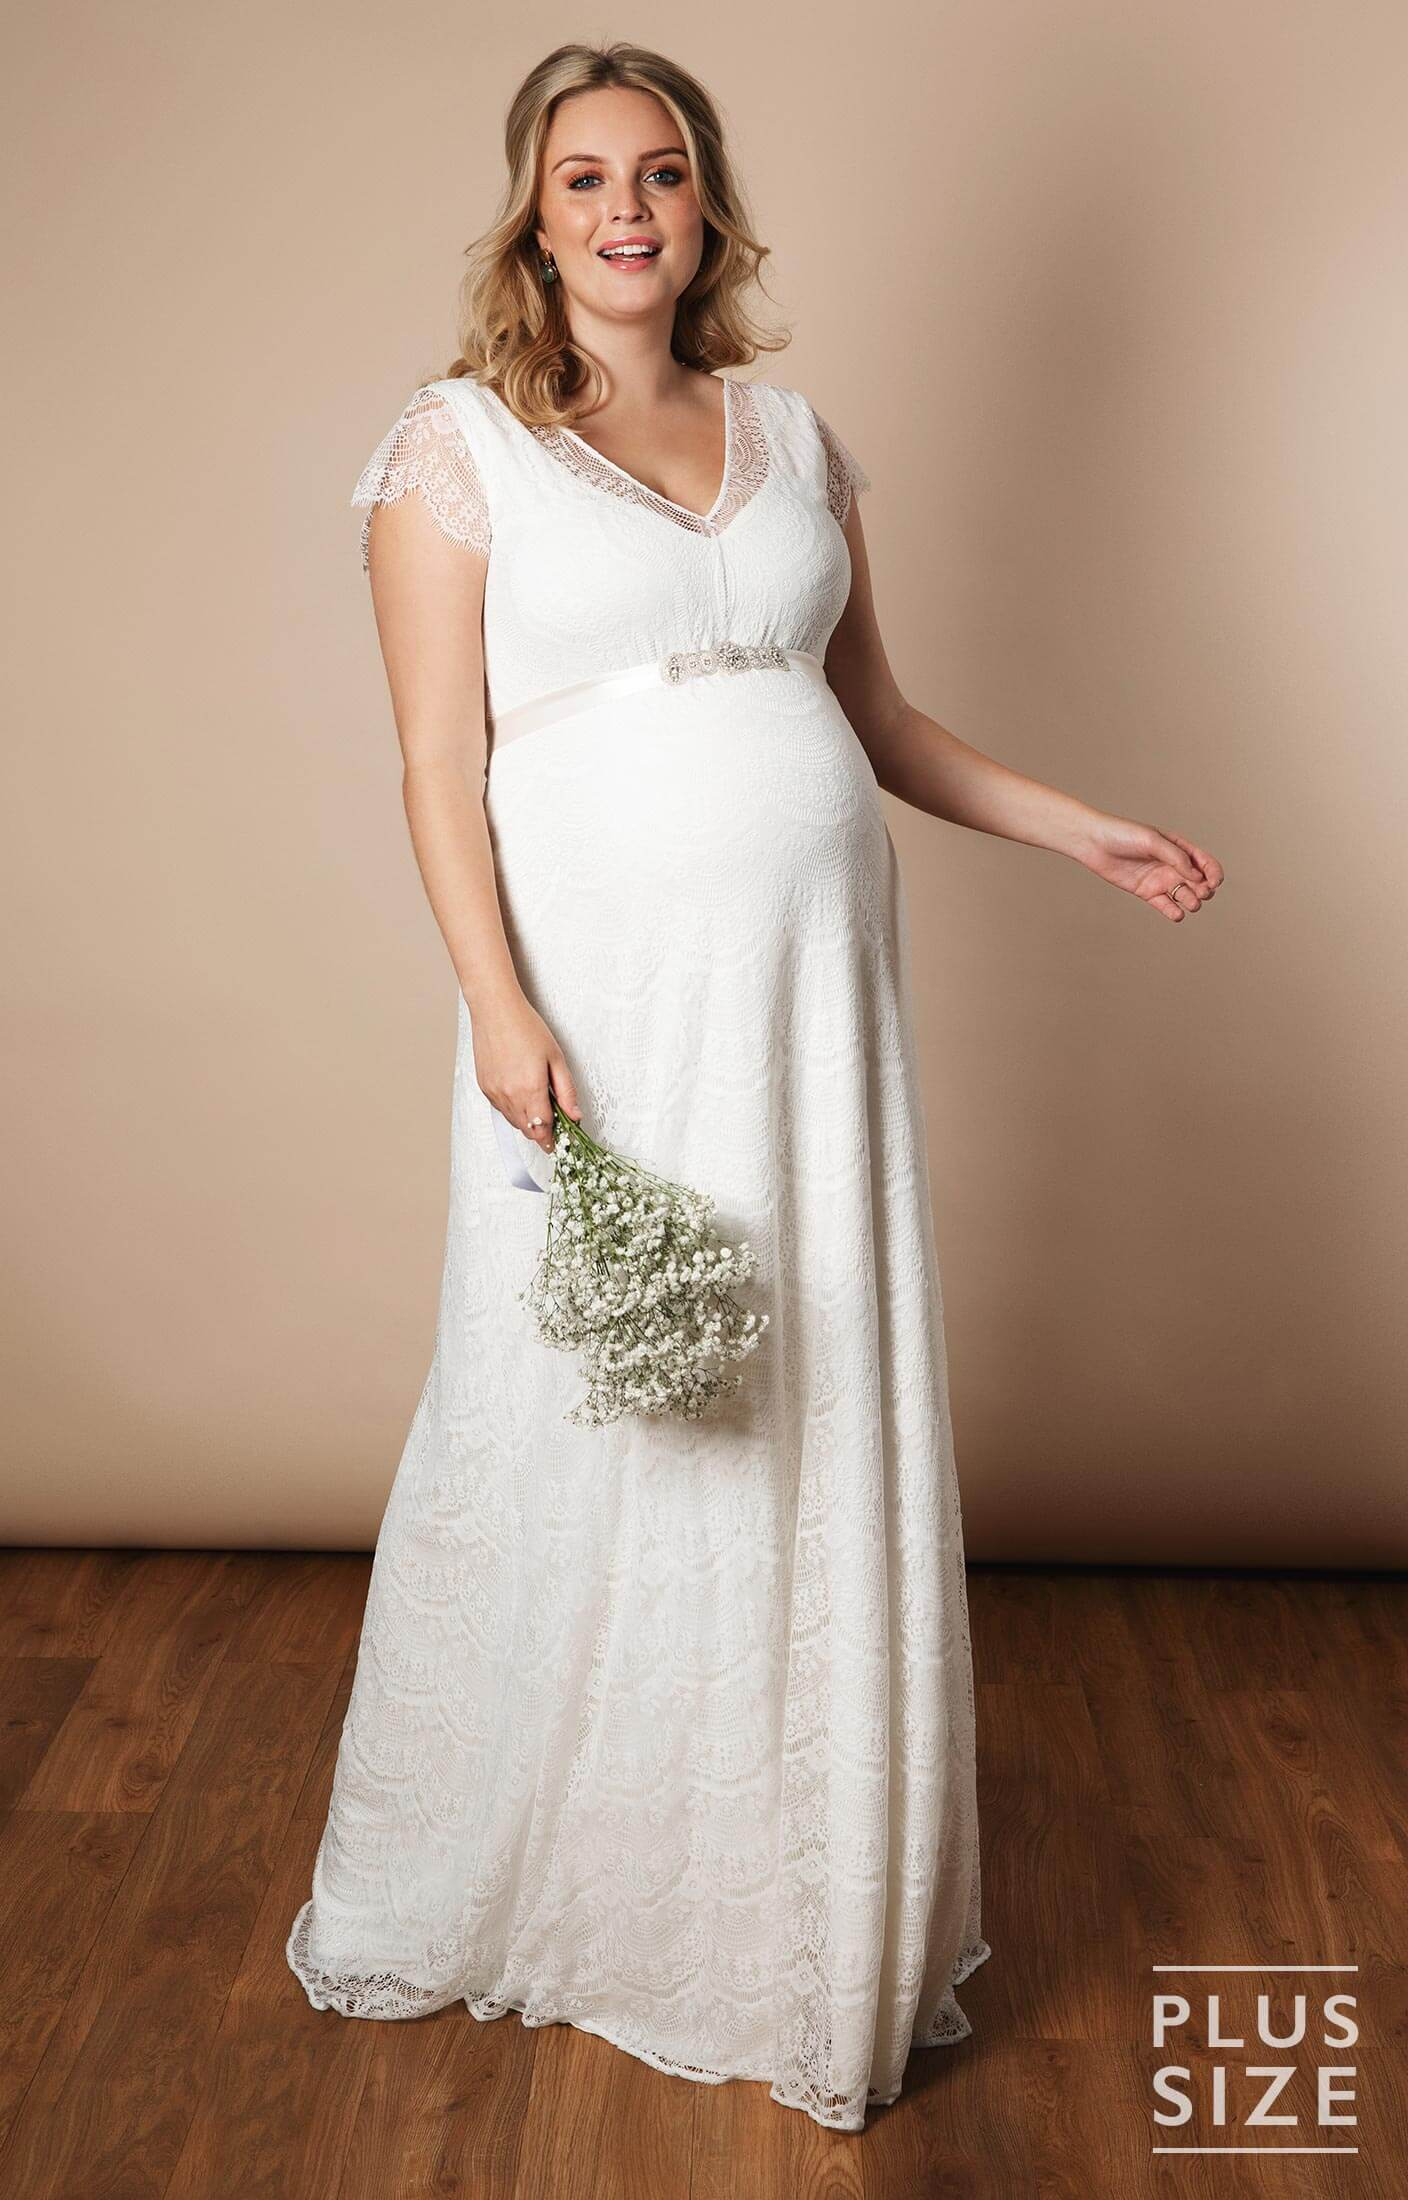 53e356fcd5f8 Kristin Plus Size Maternity Wedding Gown Long Ivory - Maternity ...